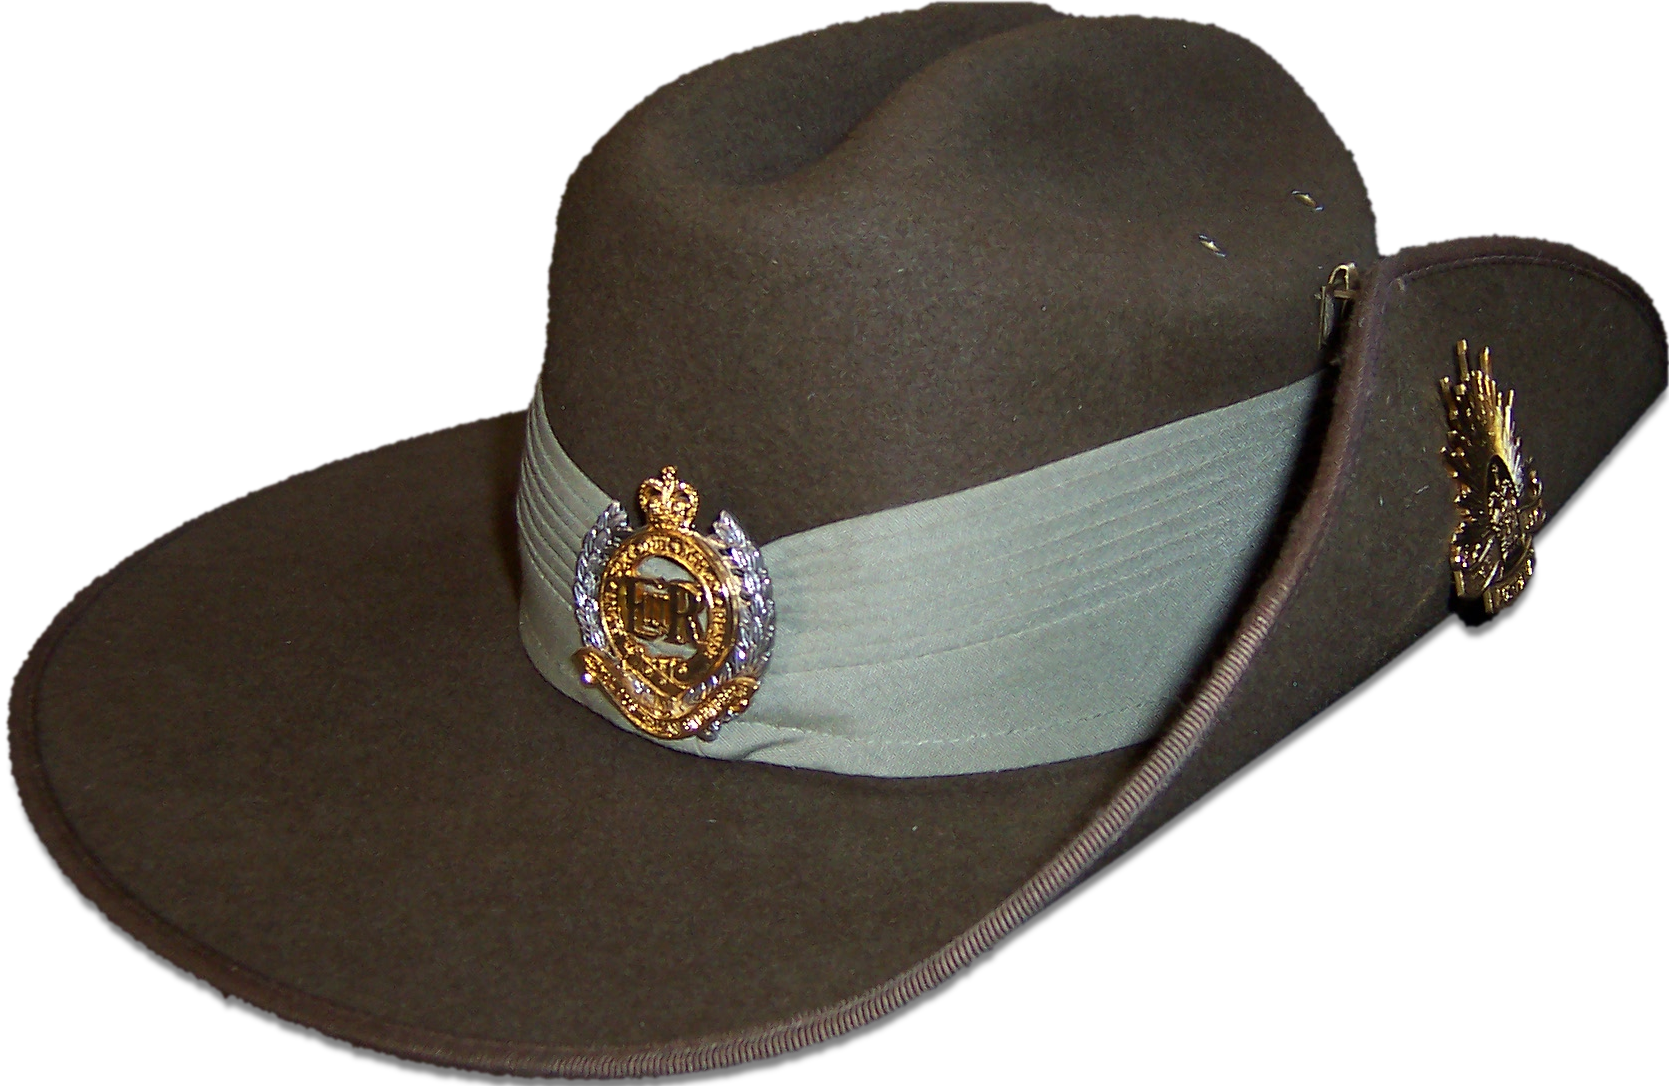 ddc90f63f Slouch hat | Military Wiki | FANDOM powered by Wikia